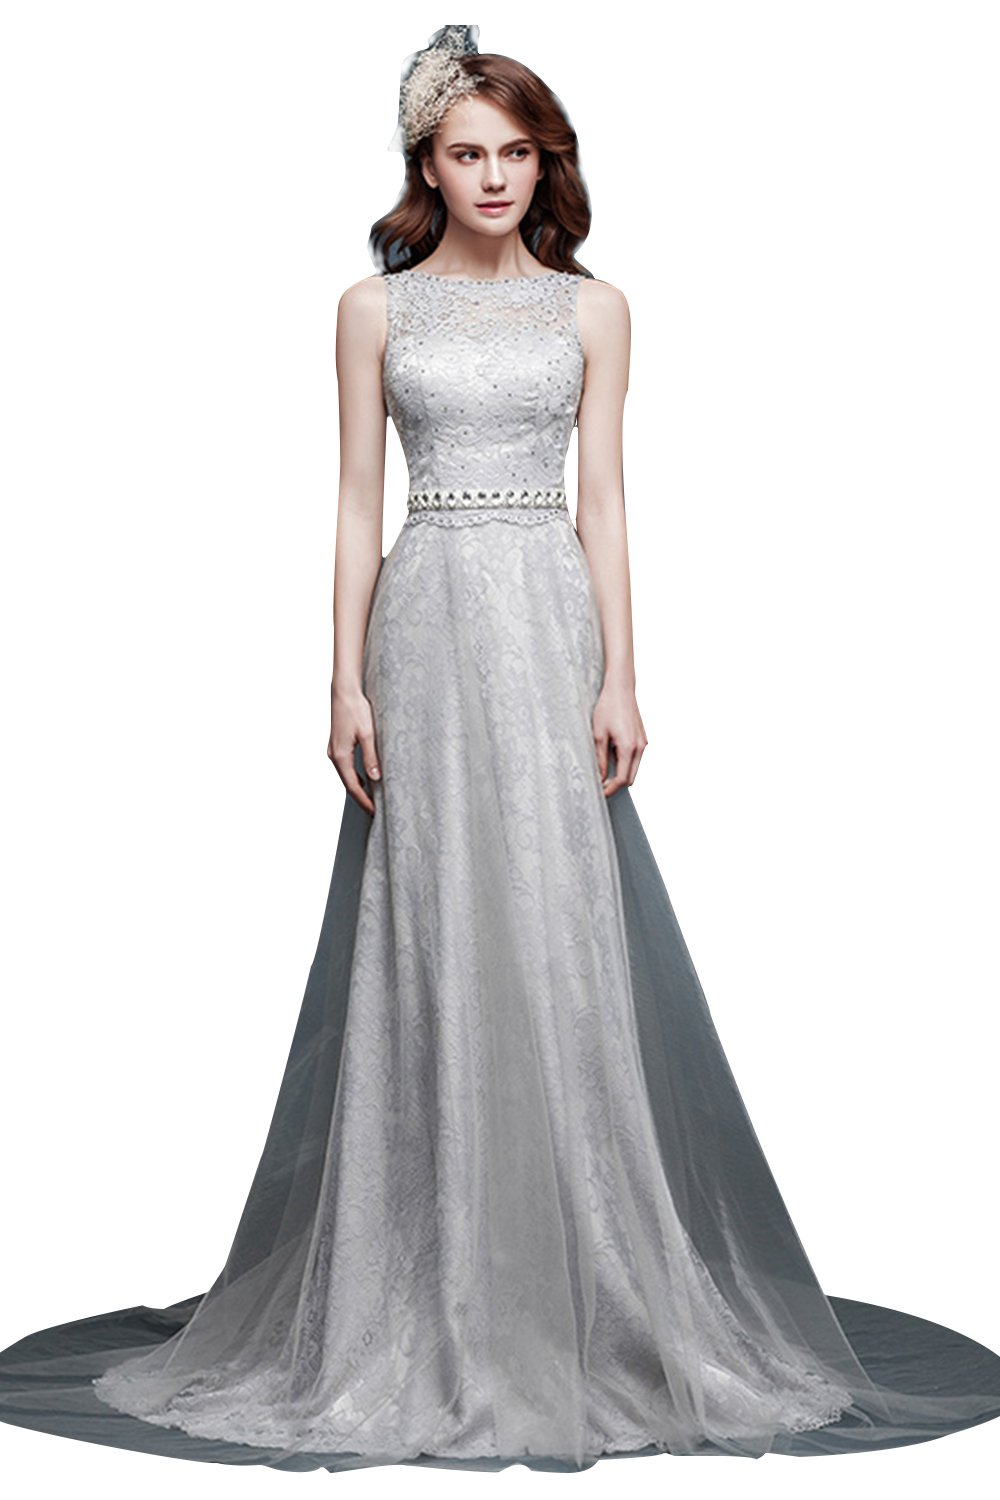 Snowskite Women's High Neck Lace Beaded Prom Evening Dress Silver 2